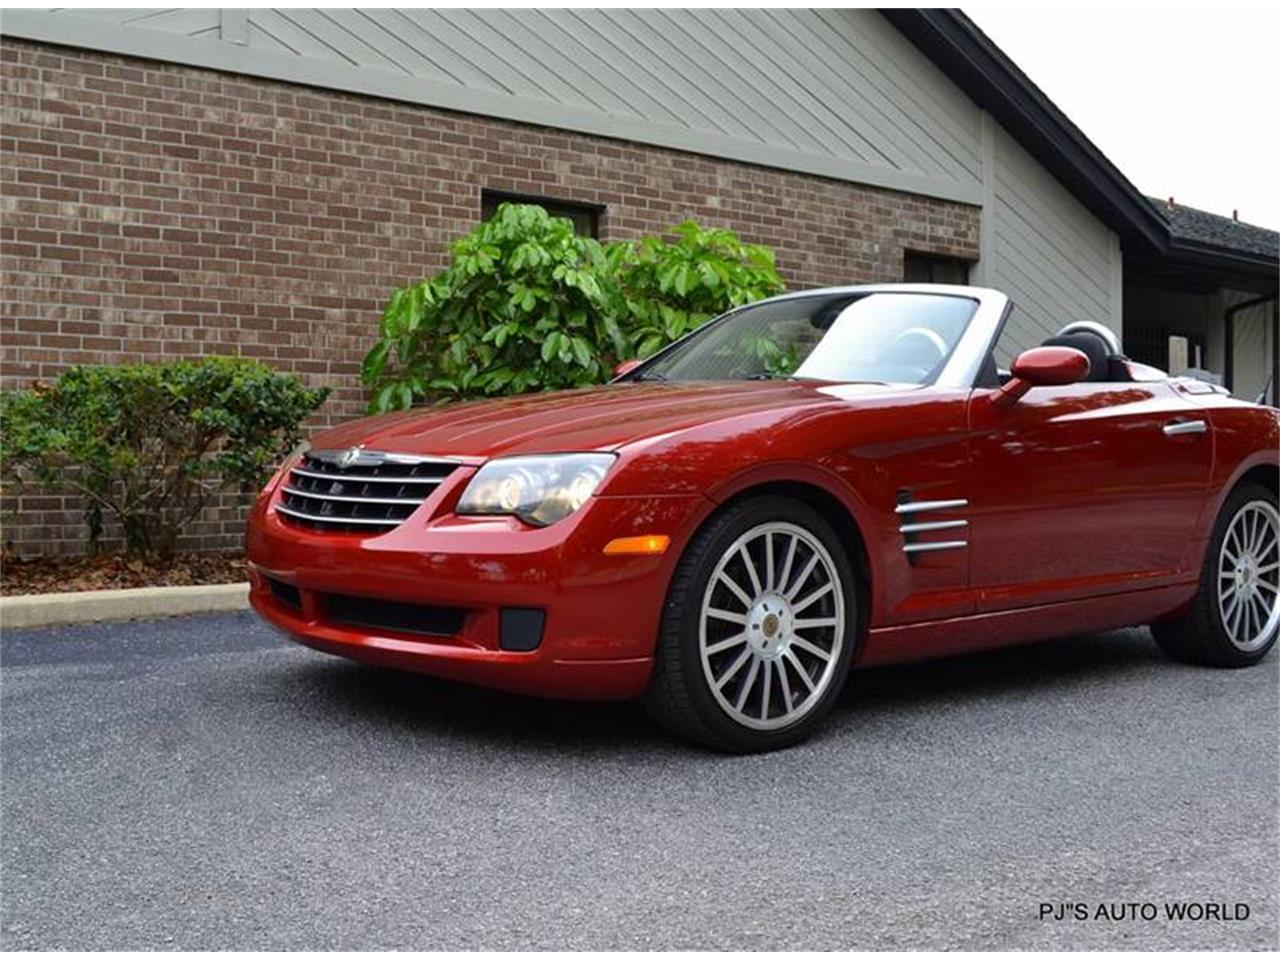 Large Picture of 2005 Chrysler Crossfire - $10,900.00 - L7XM